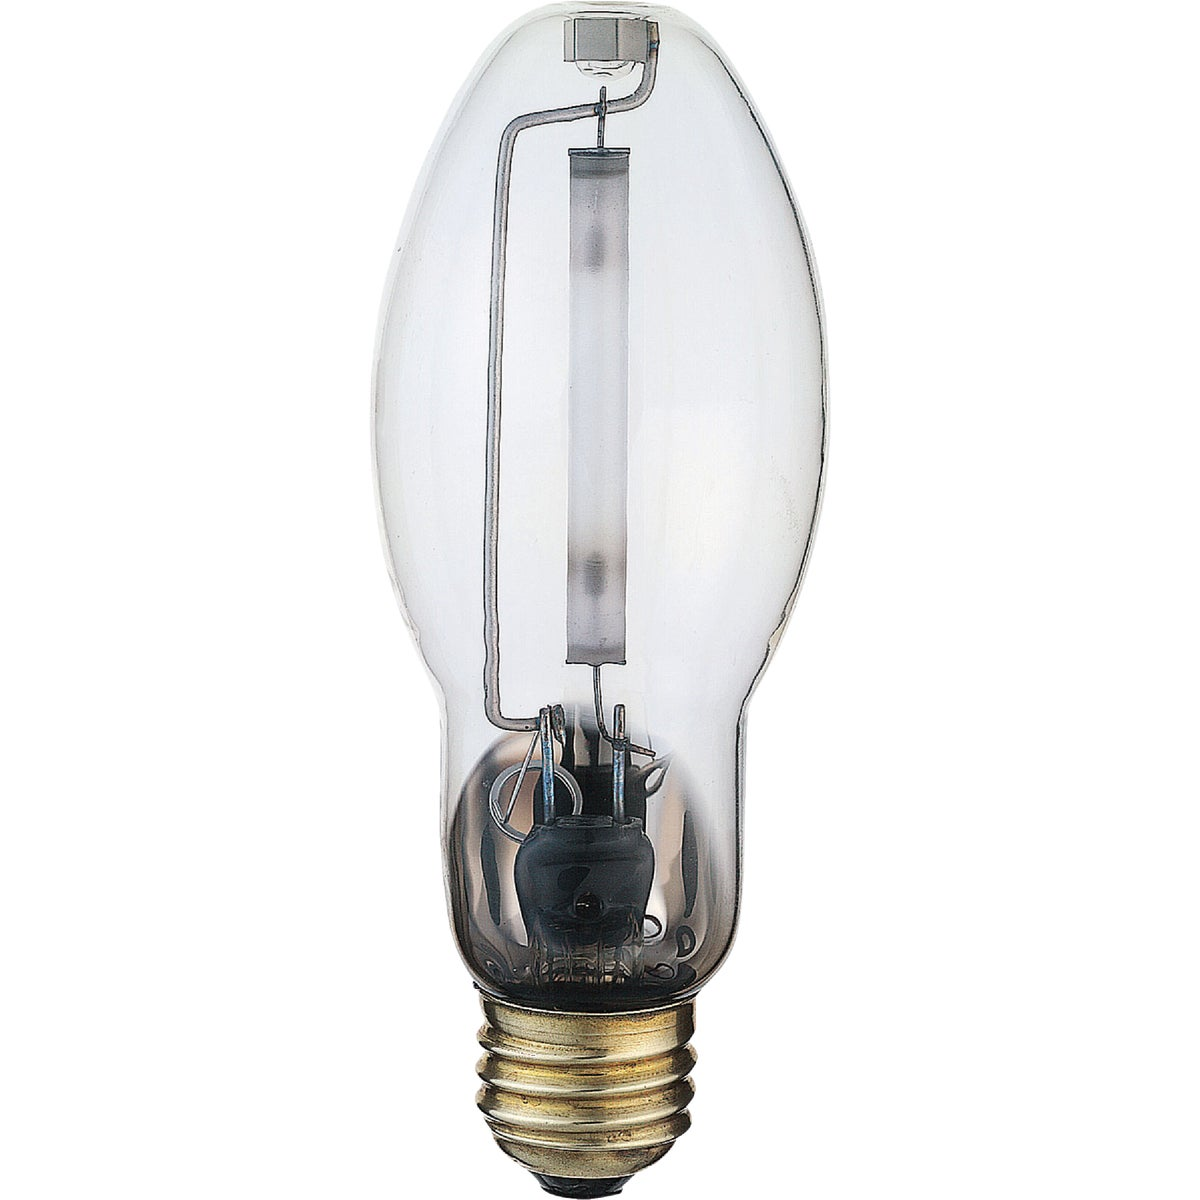 70W HP SODIUM BULB - 37437 by Westinghouse Lightng